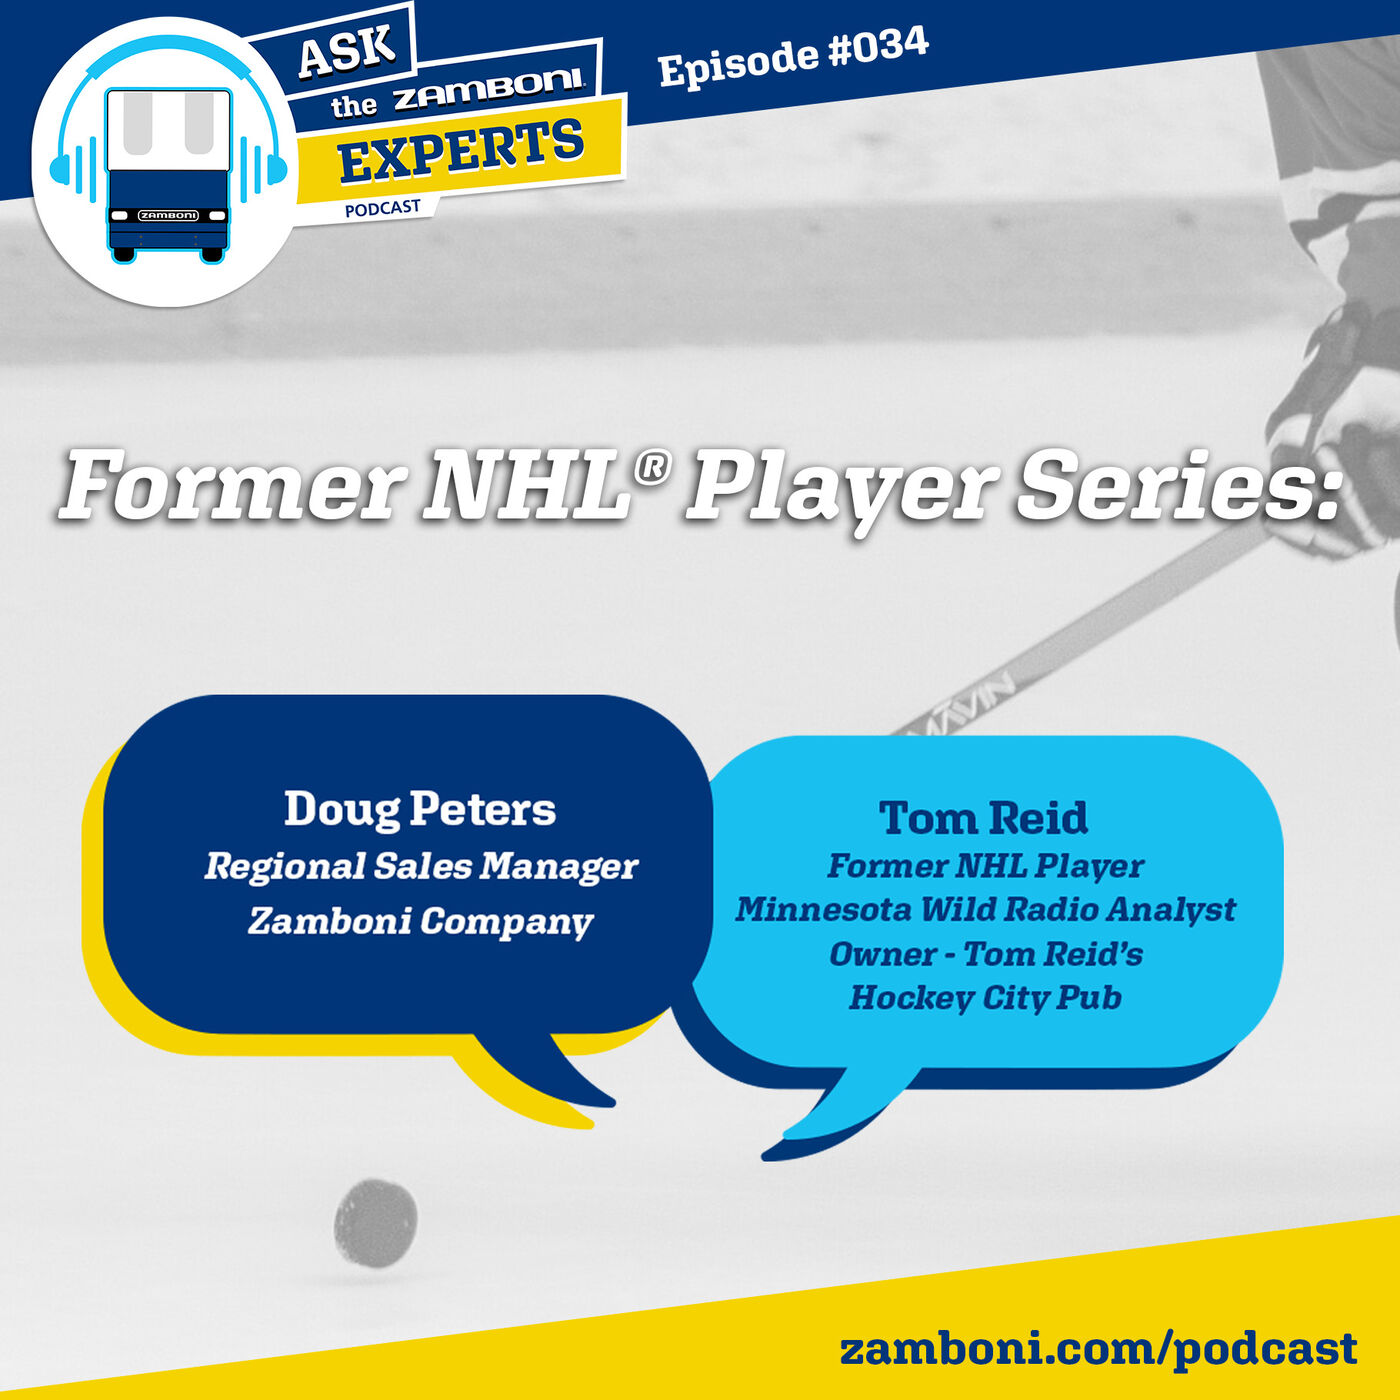 Episode #034: Former NHL® Player Tom Reid